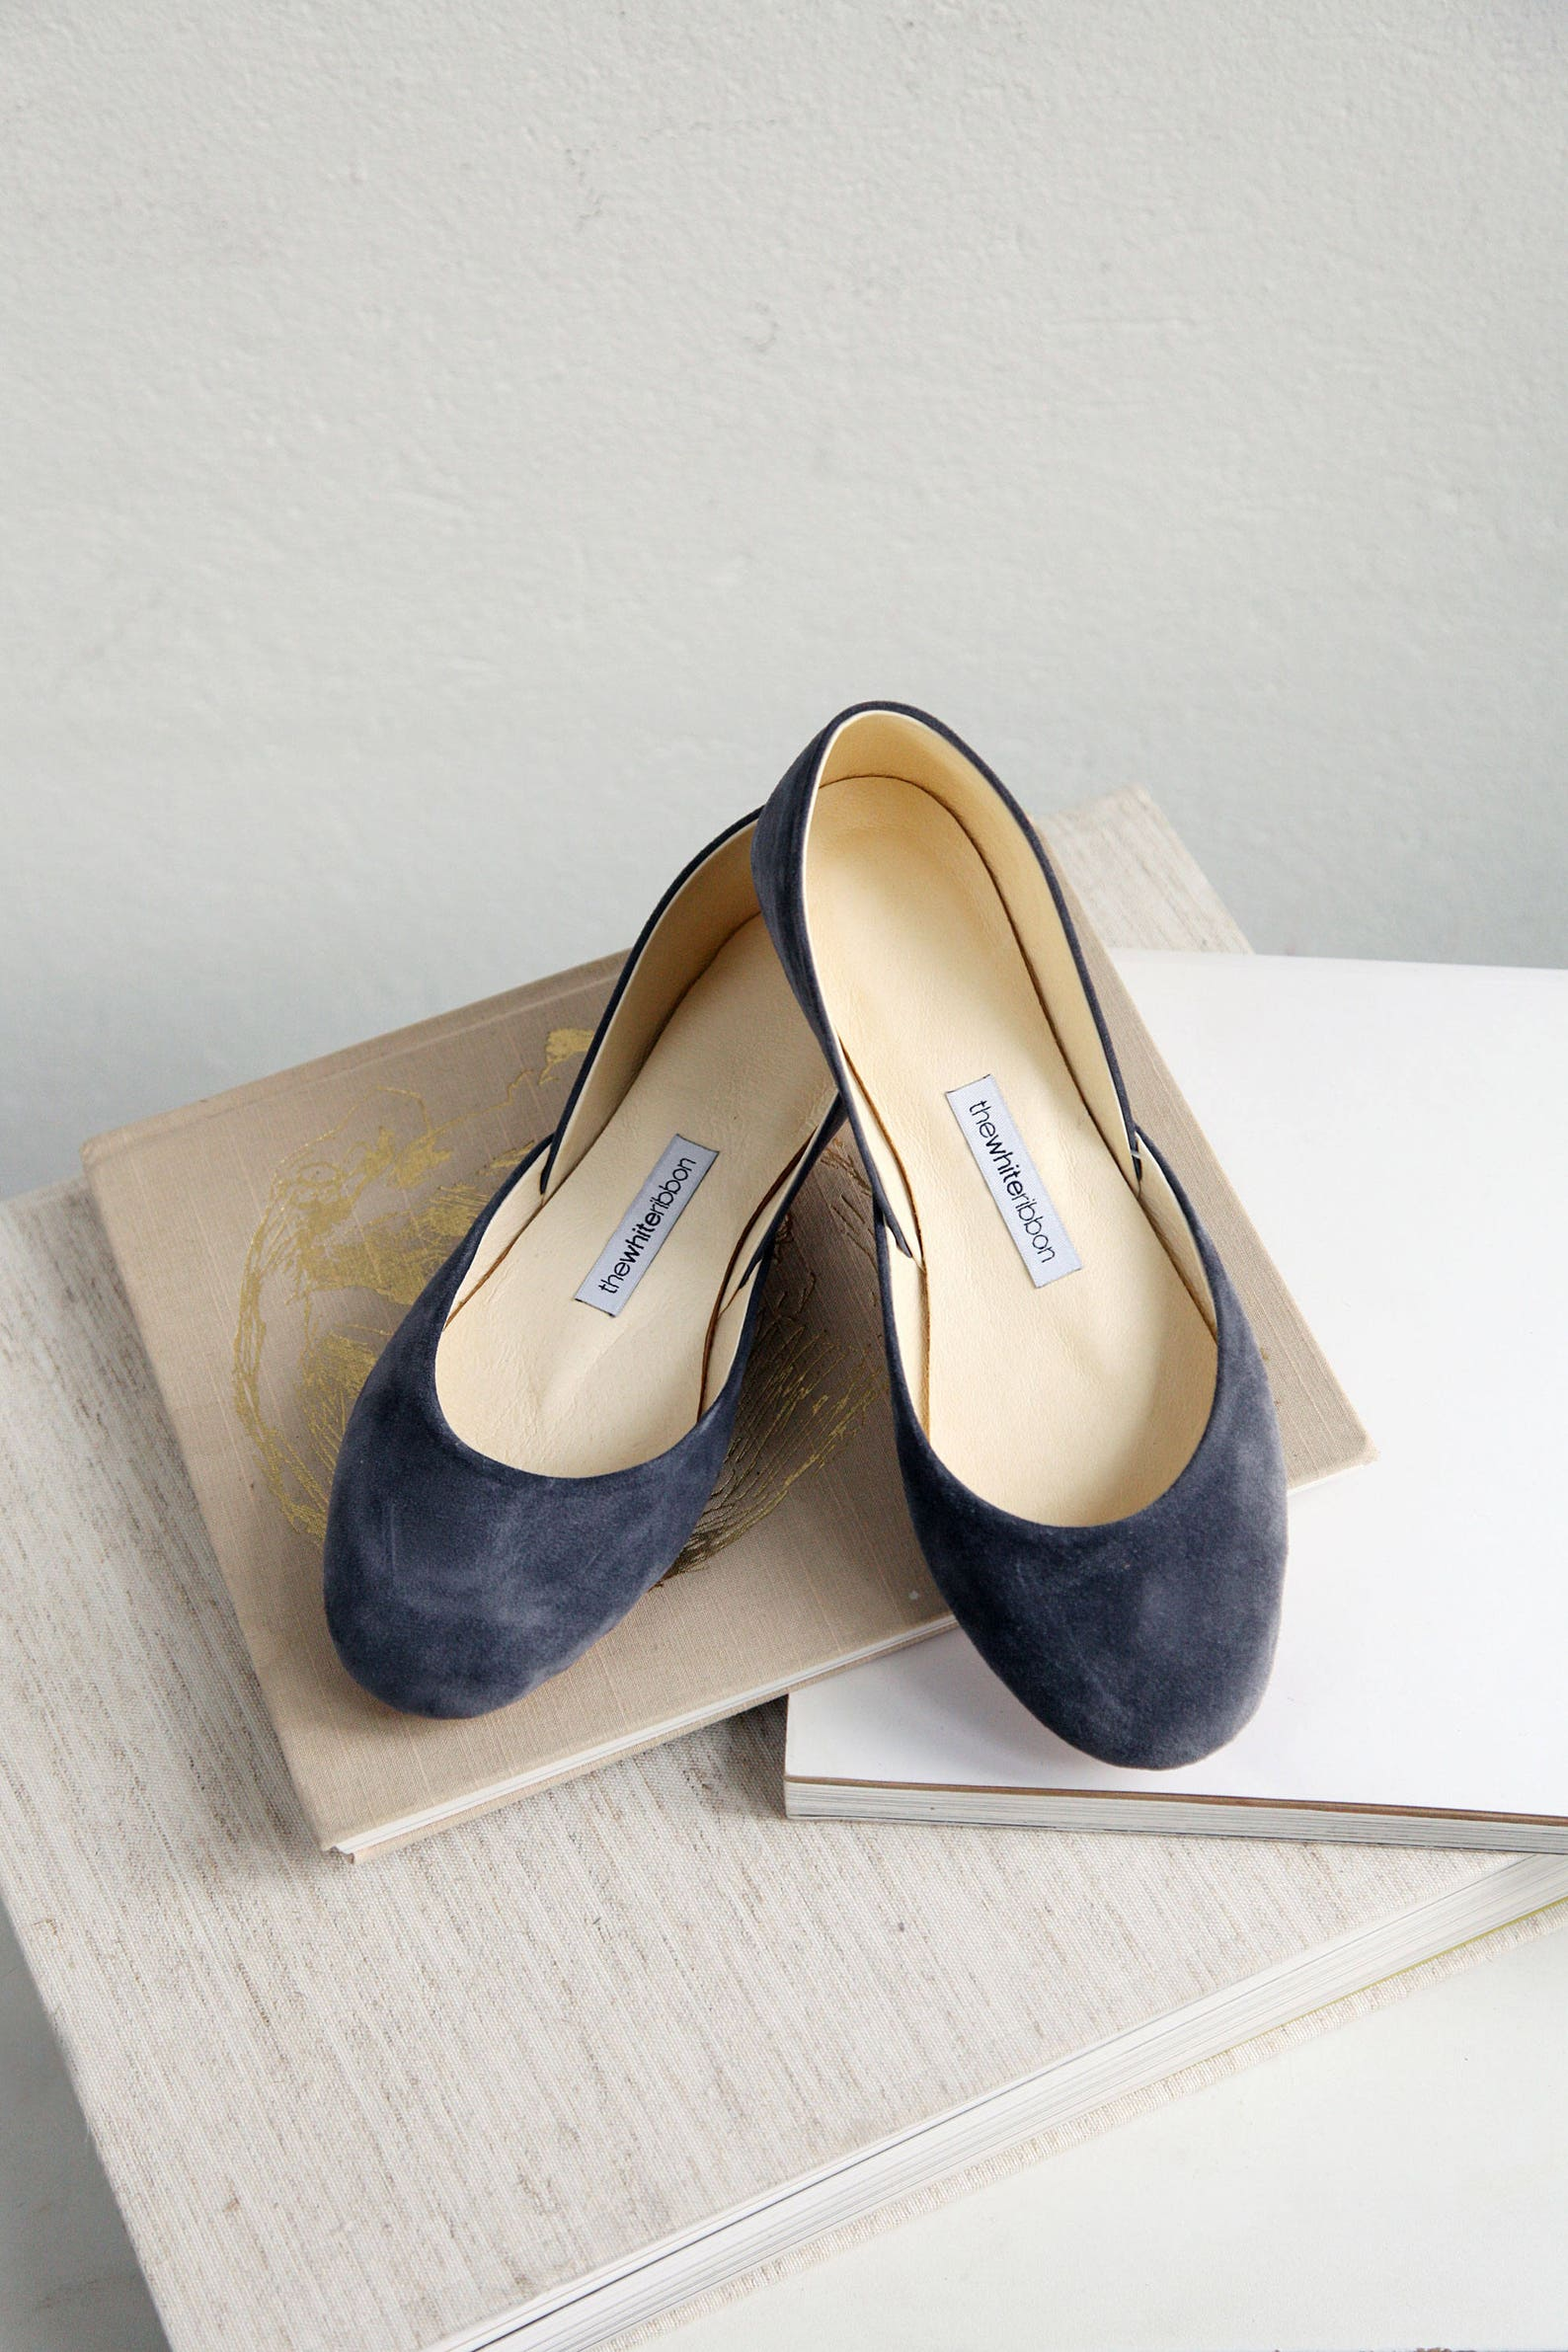 the suede ballet flats in smokey gray | pointe style shoes | classic model | standard width | smokey grey | ready to ship